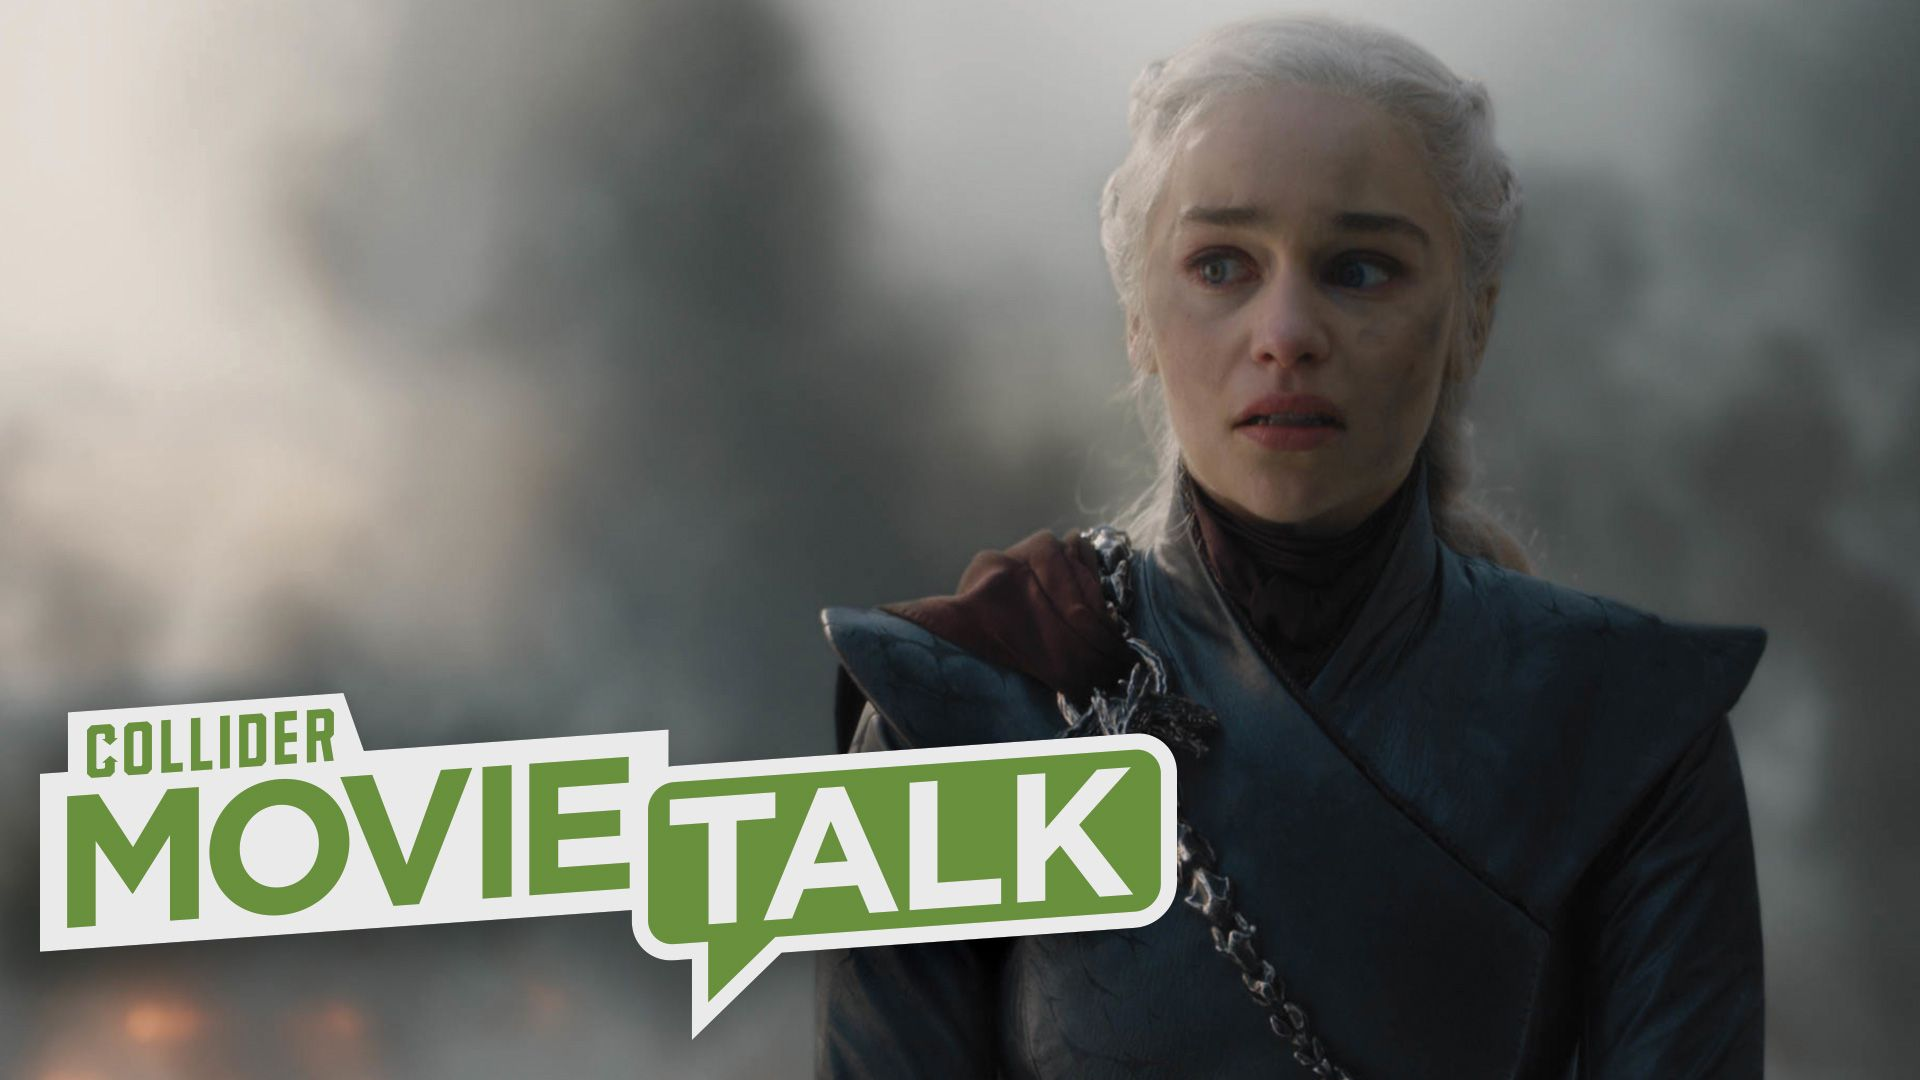 Will the 'Game of Thrones' Reaction Affect the Benioff & Weiss 'Star Wars' Film?